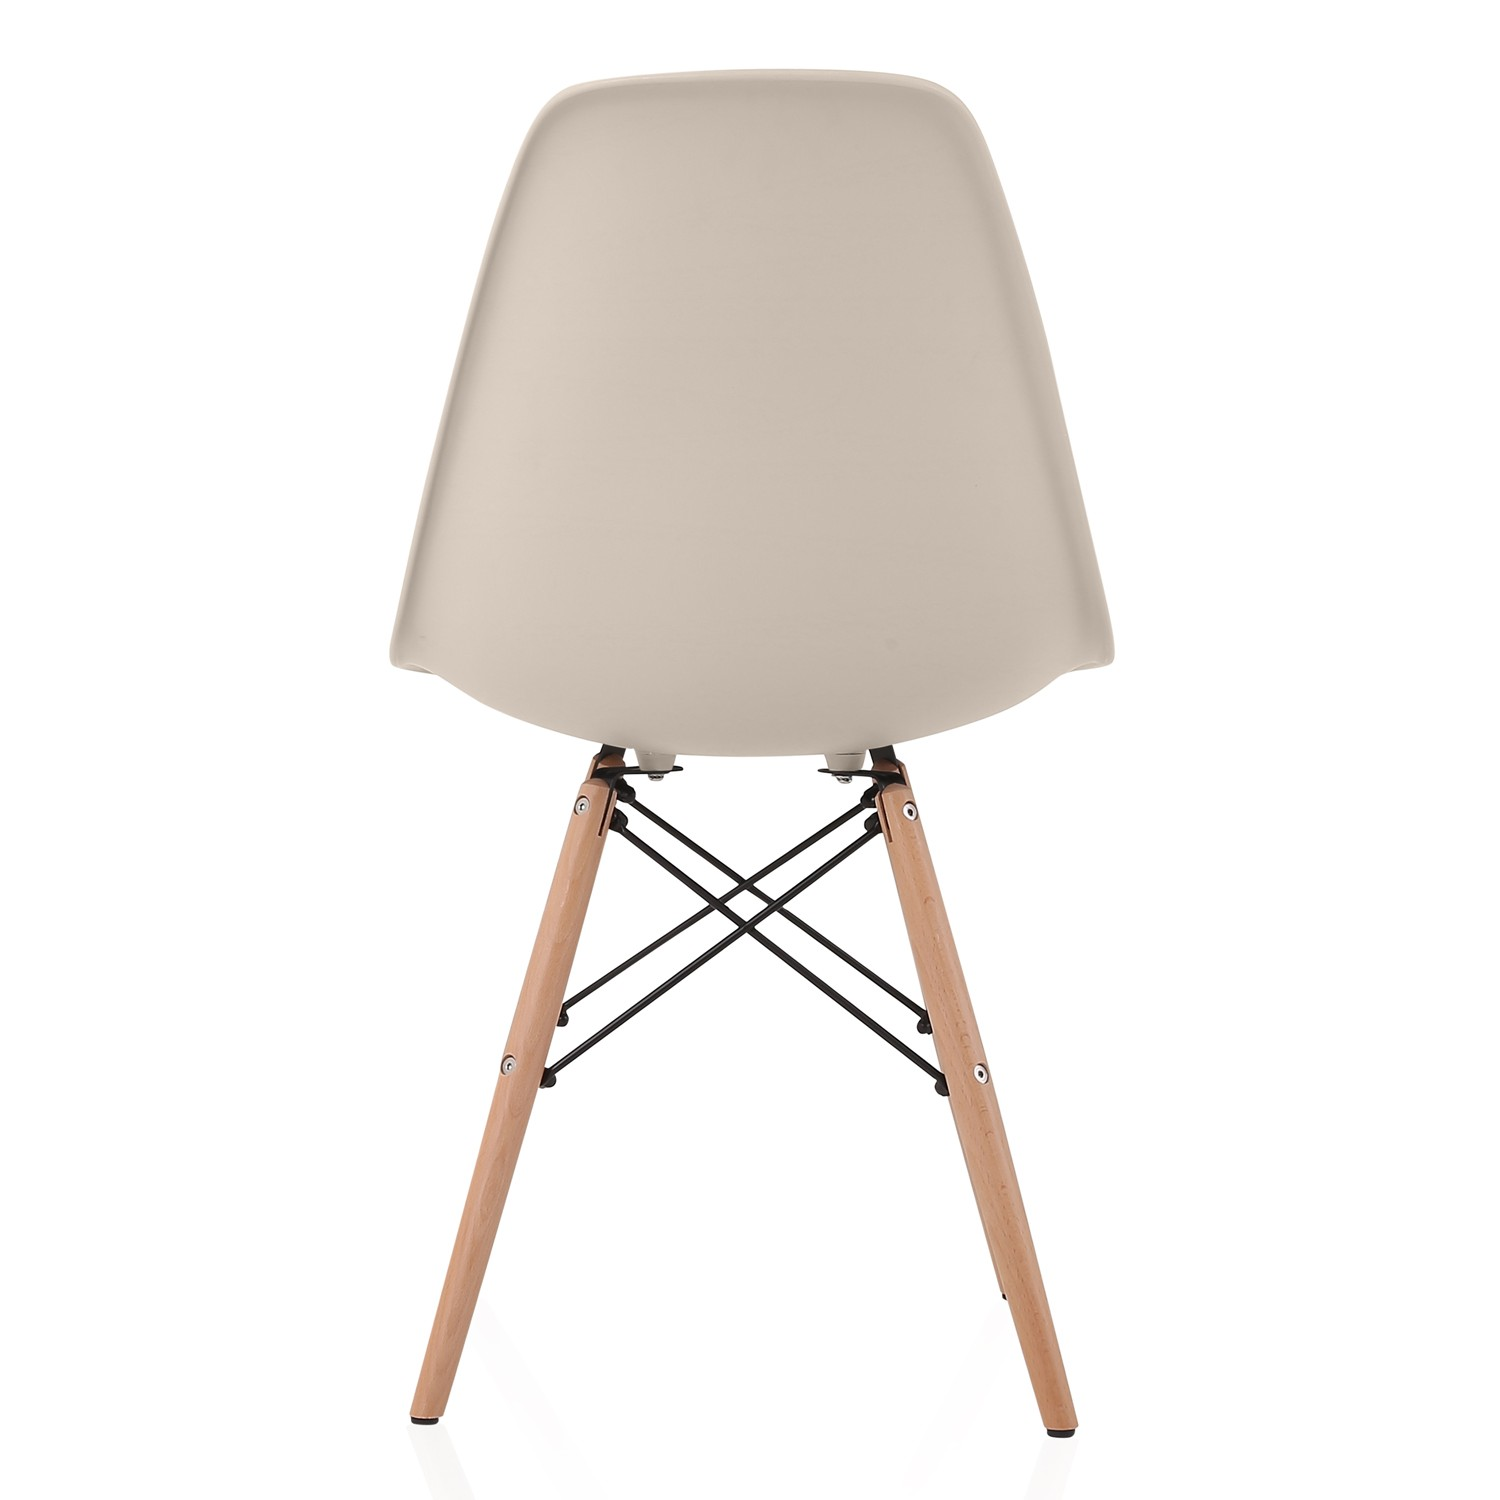 eiffel dining chair with beech legs swing for child nature series cream beige eames style dsw molded plastic